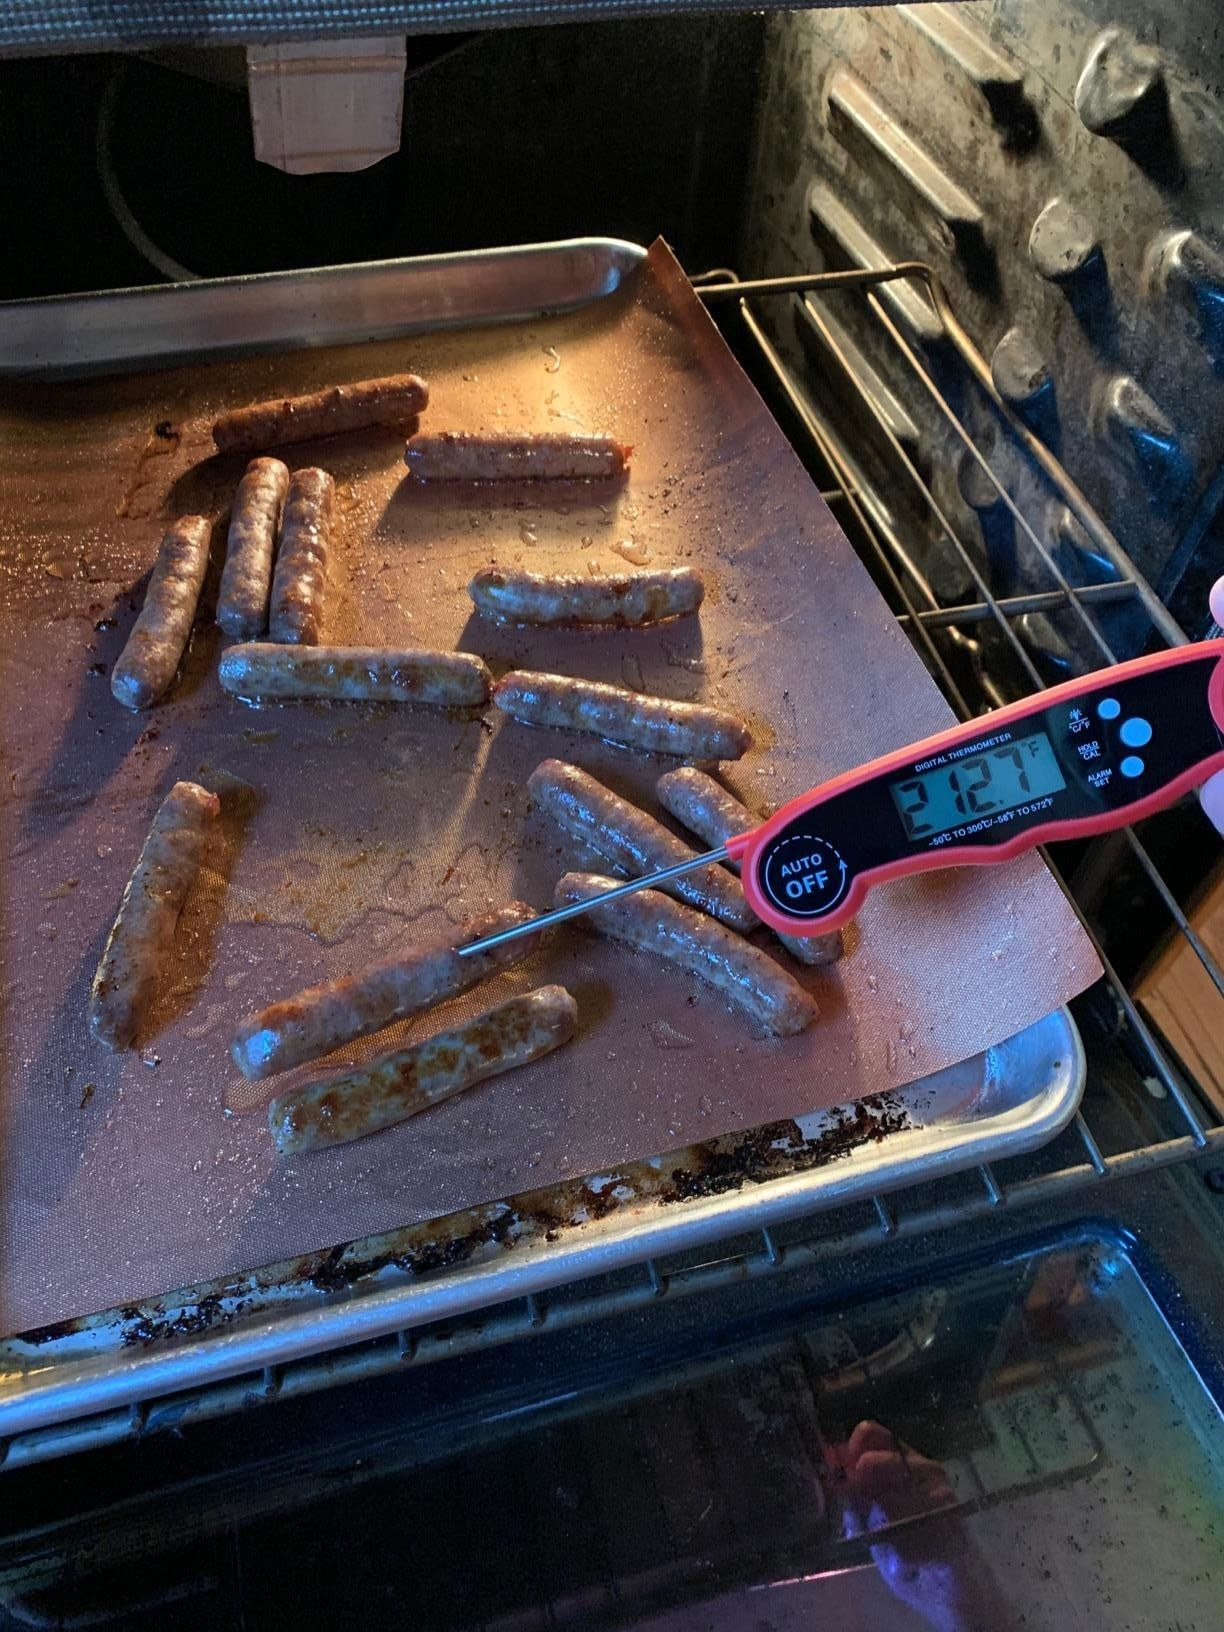 image of reviewer using the red meat thermometer to check the temperature of oven-baked sausages